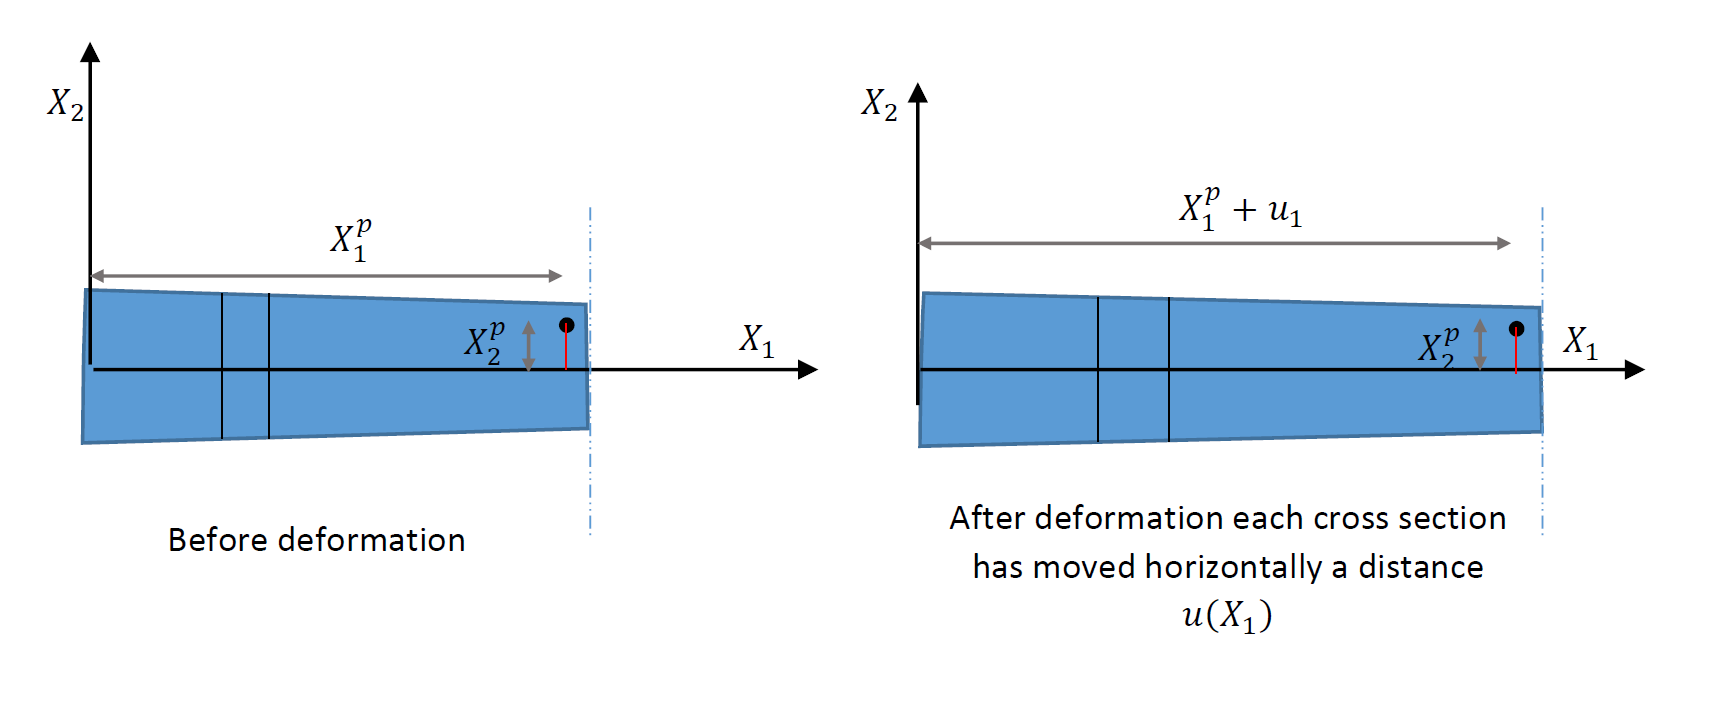 Deformation assumption of beams under axial loading. Cross section perpendicular to the neutral axis move horizontally in the direction o.